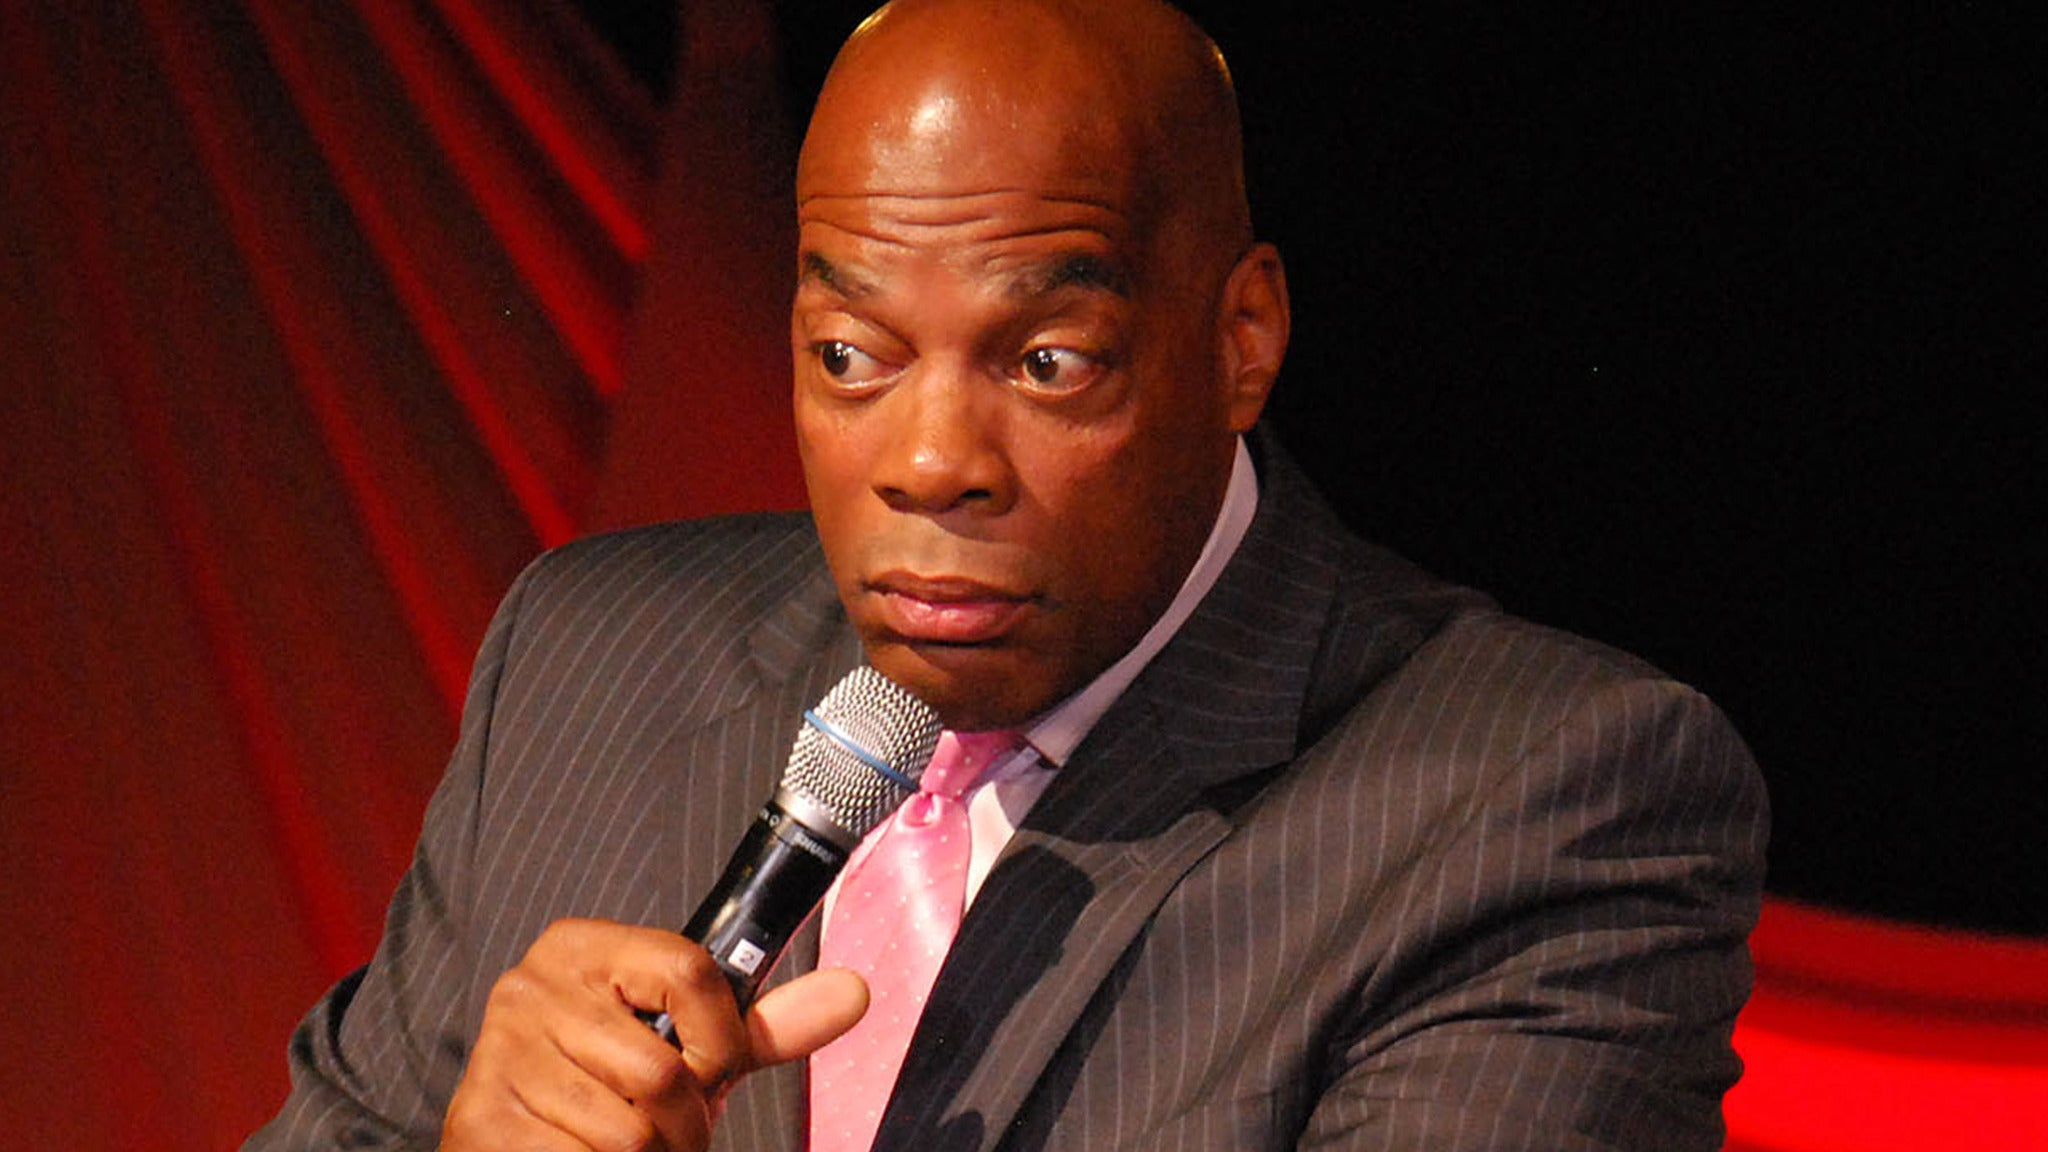 Alonzo Bodden at The Armory at MGM Springfield